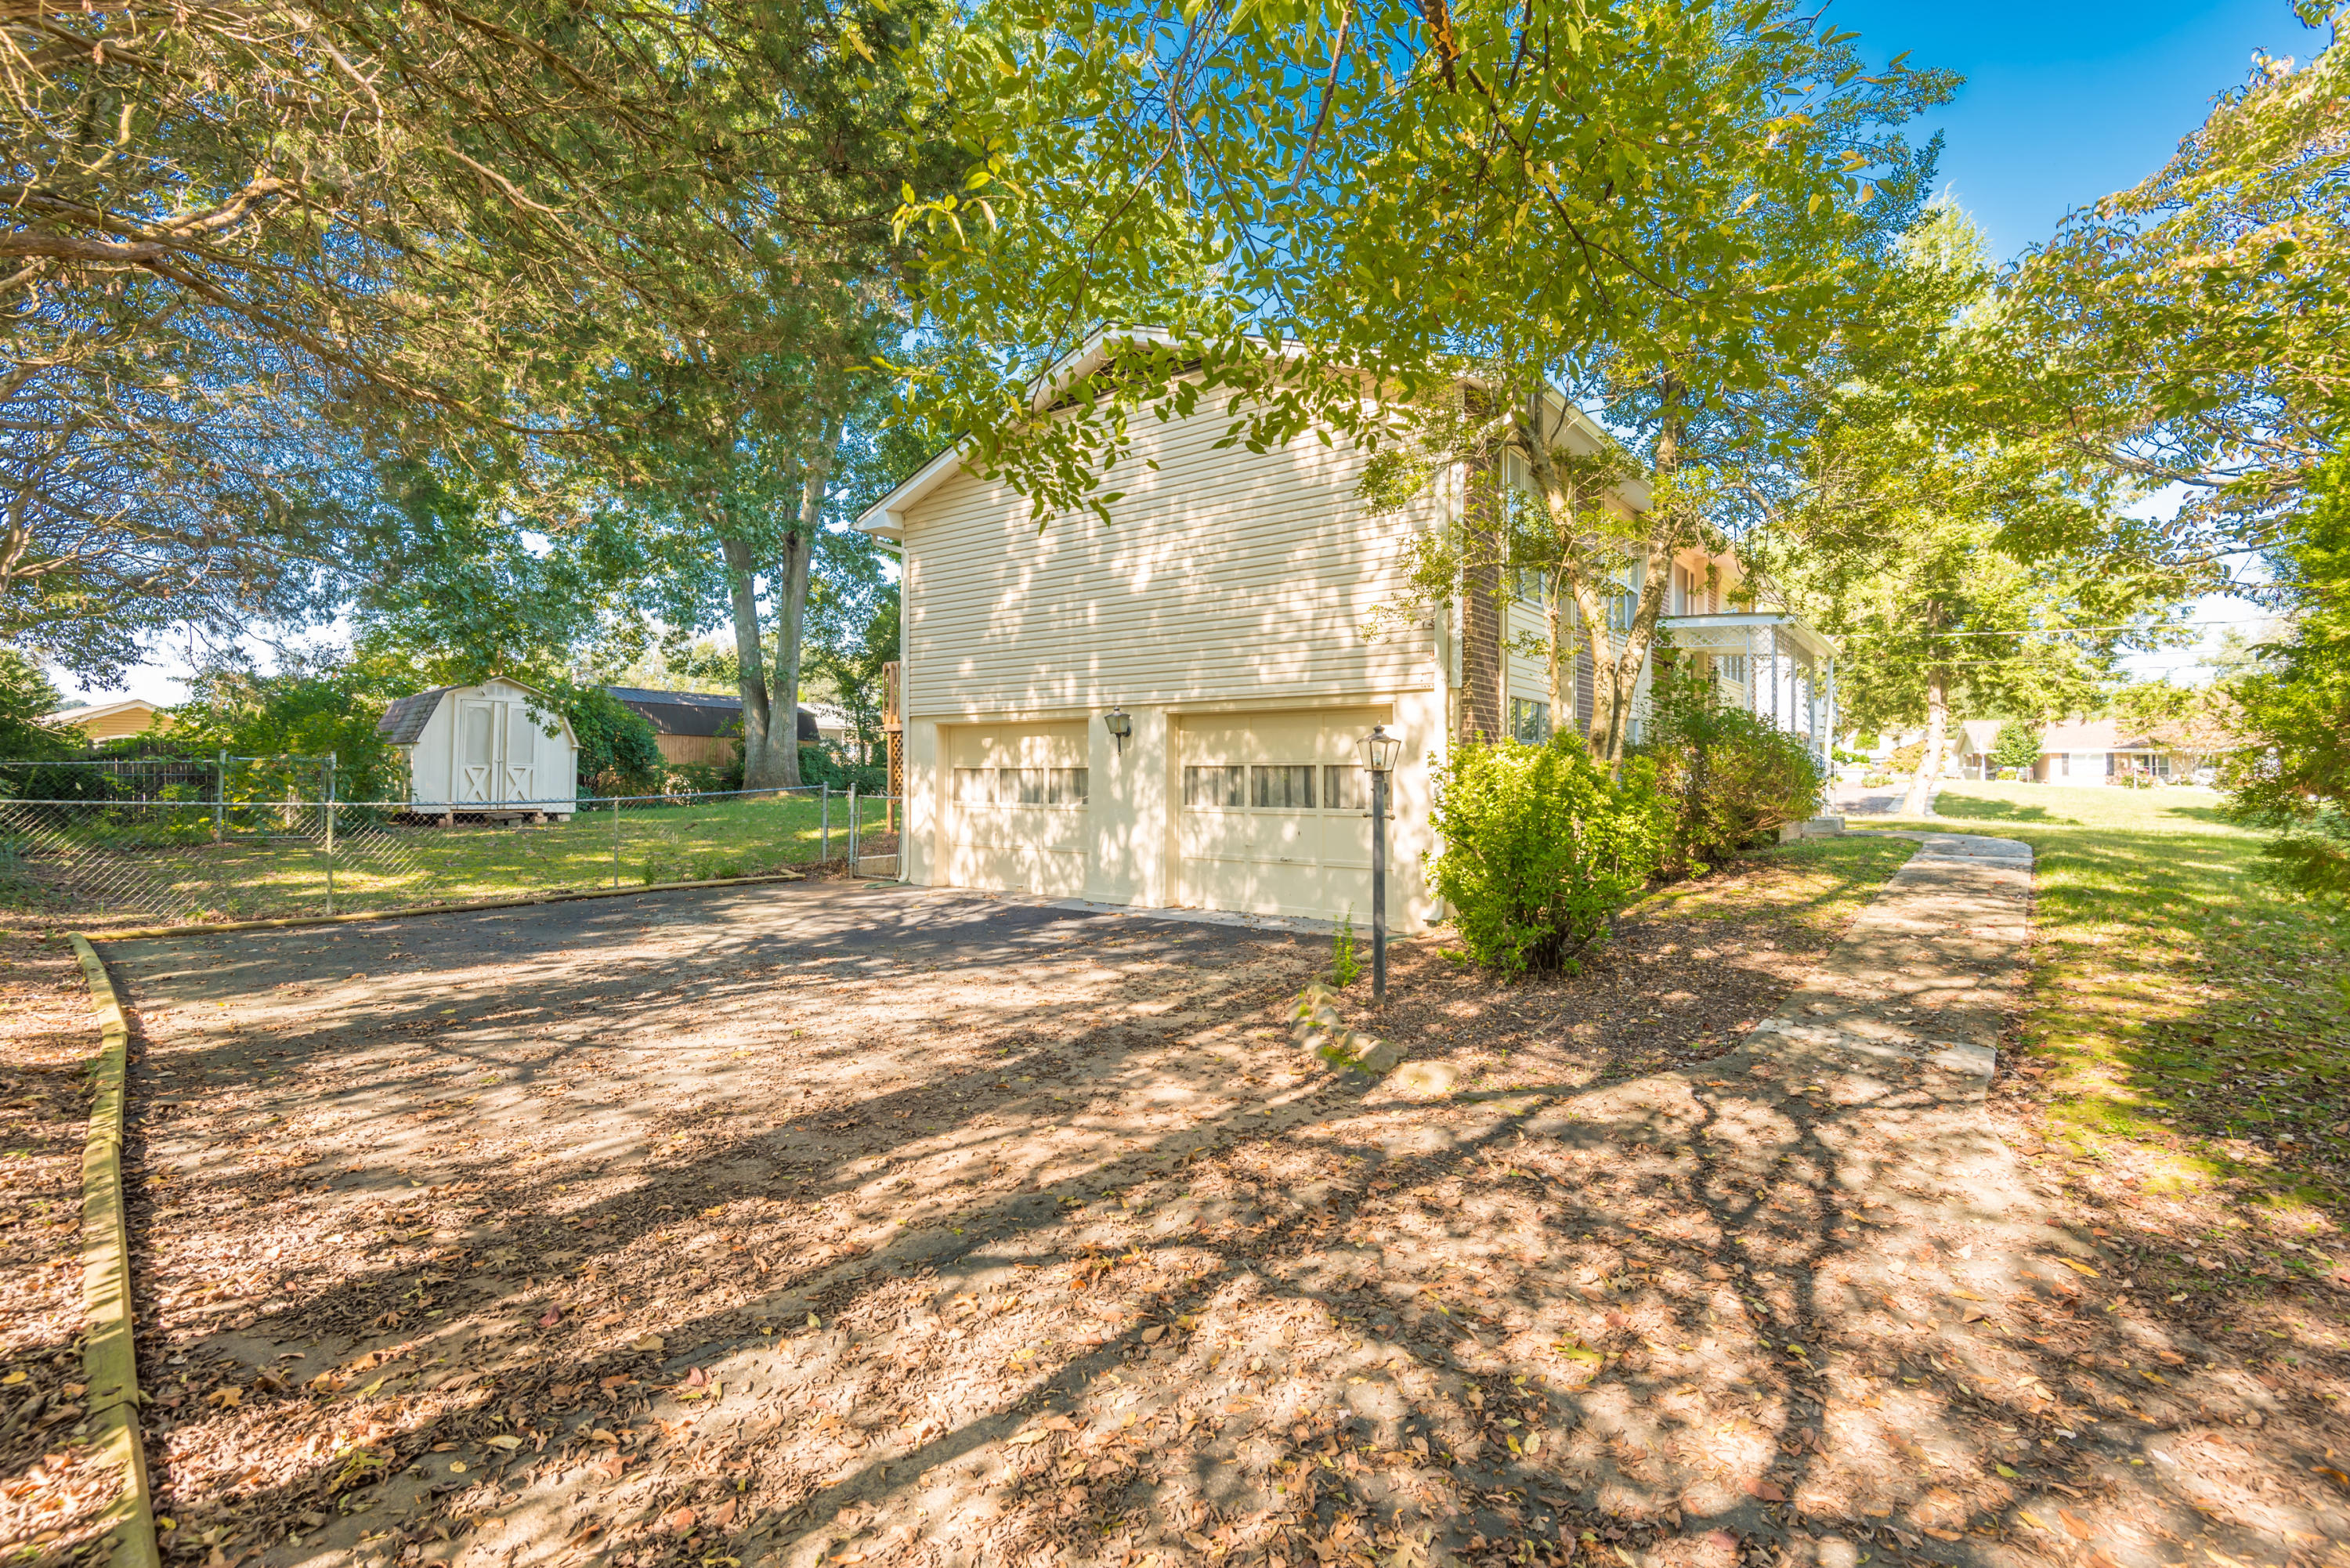 7609 Fall Wind Court, Powell, Tennessee 37849, 3 Bedrooms Bedrooms, ,2 BathroomsBathrooms,Single Family,For Sale,Fall Wind,1058966